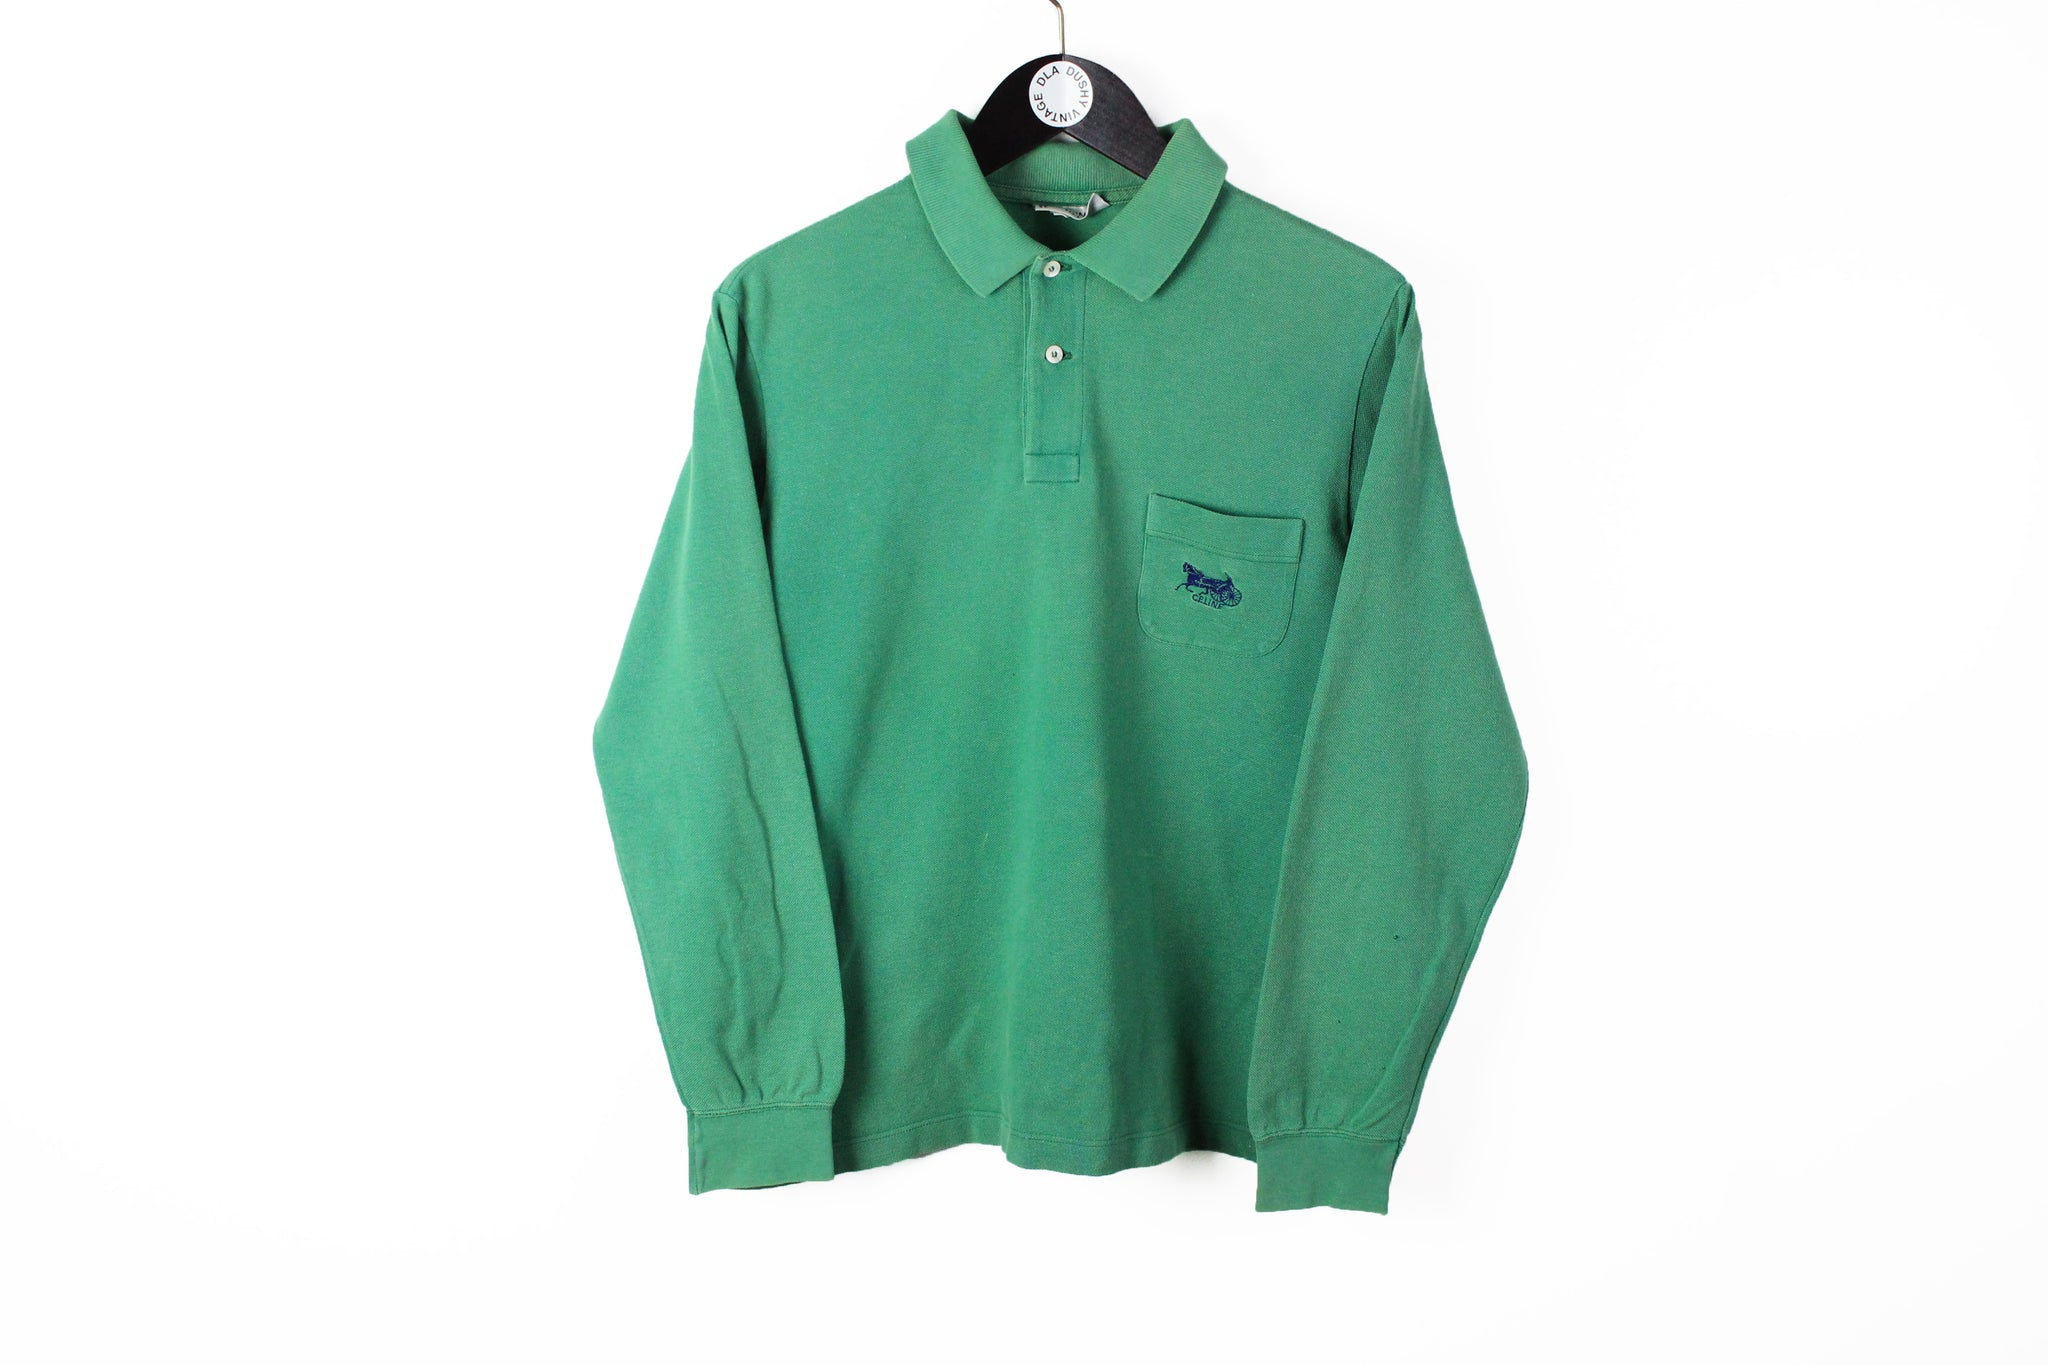 Vintage Celine Rugby Shirt Small green small logo 90s retro style luxury t-shirt long sleeve